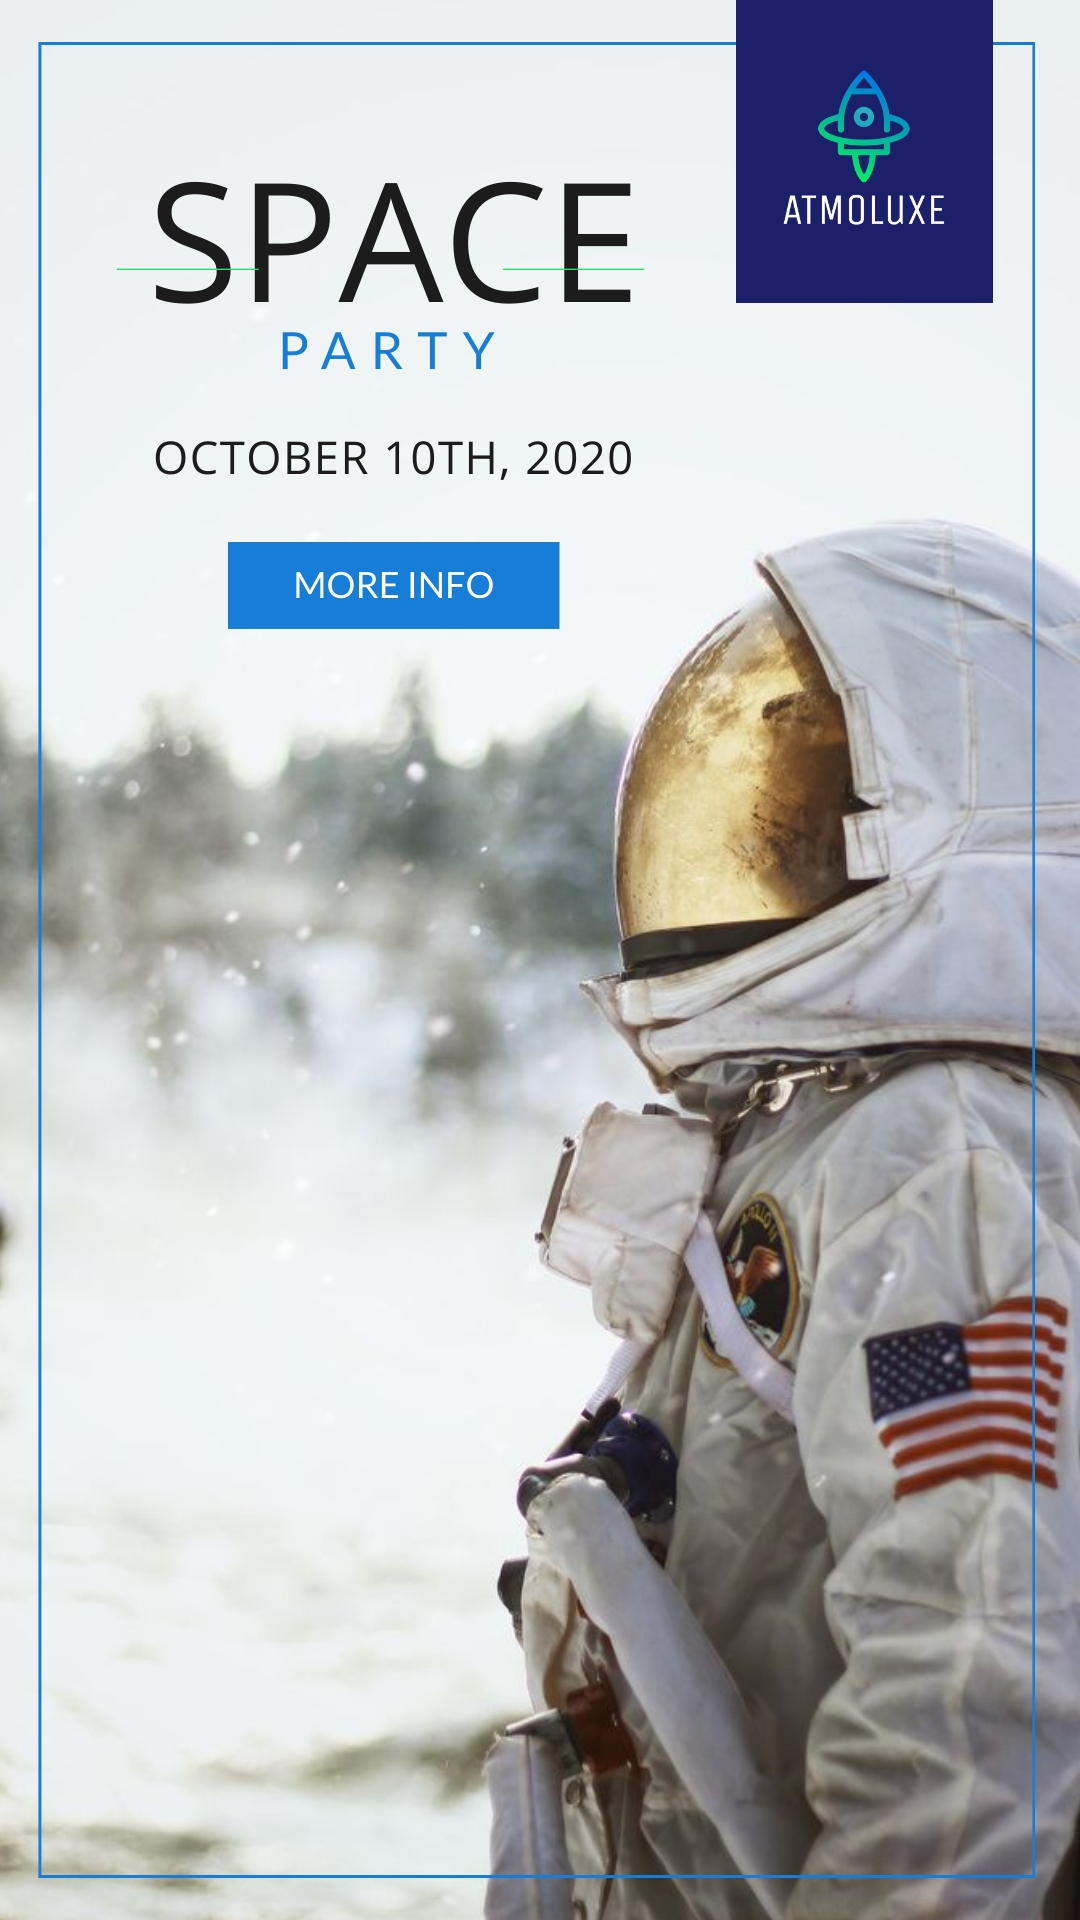 Atmoluxe Space Party Animated Vertical Template